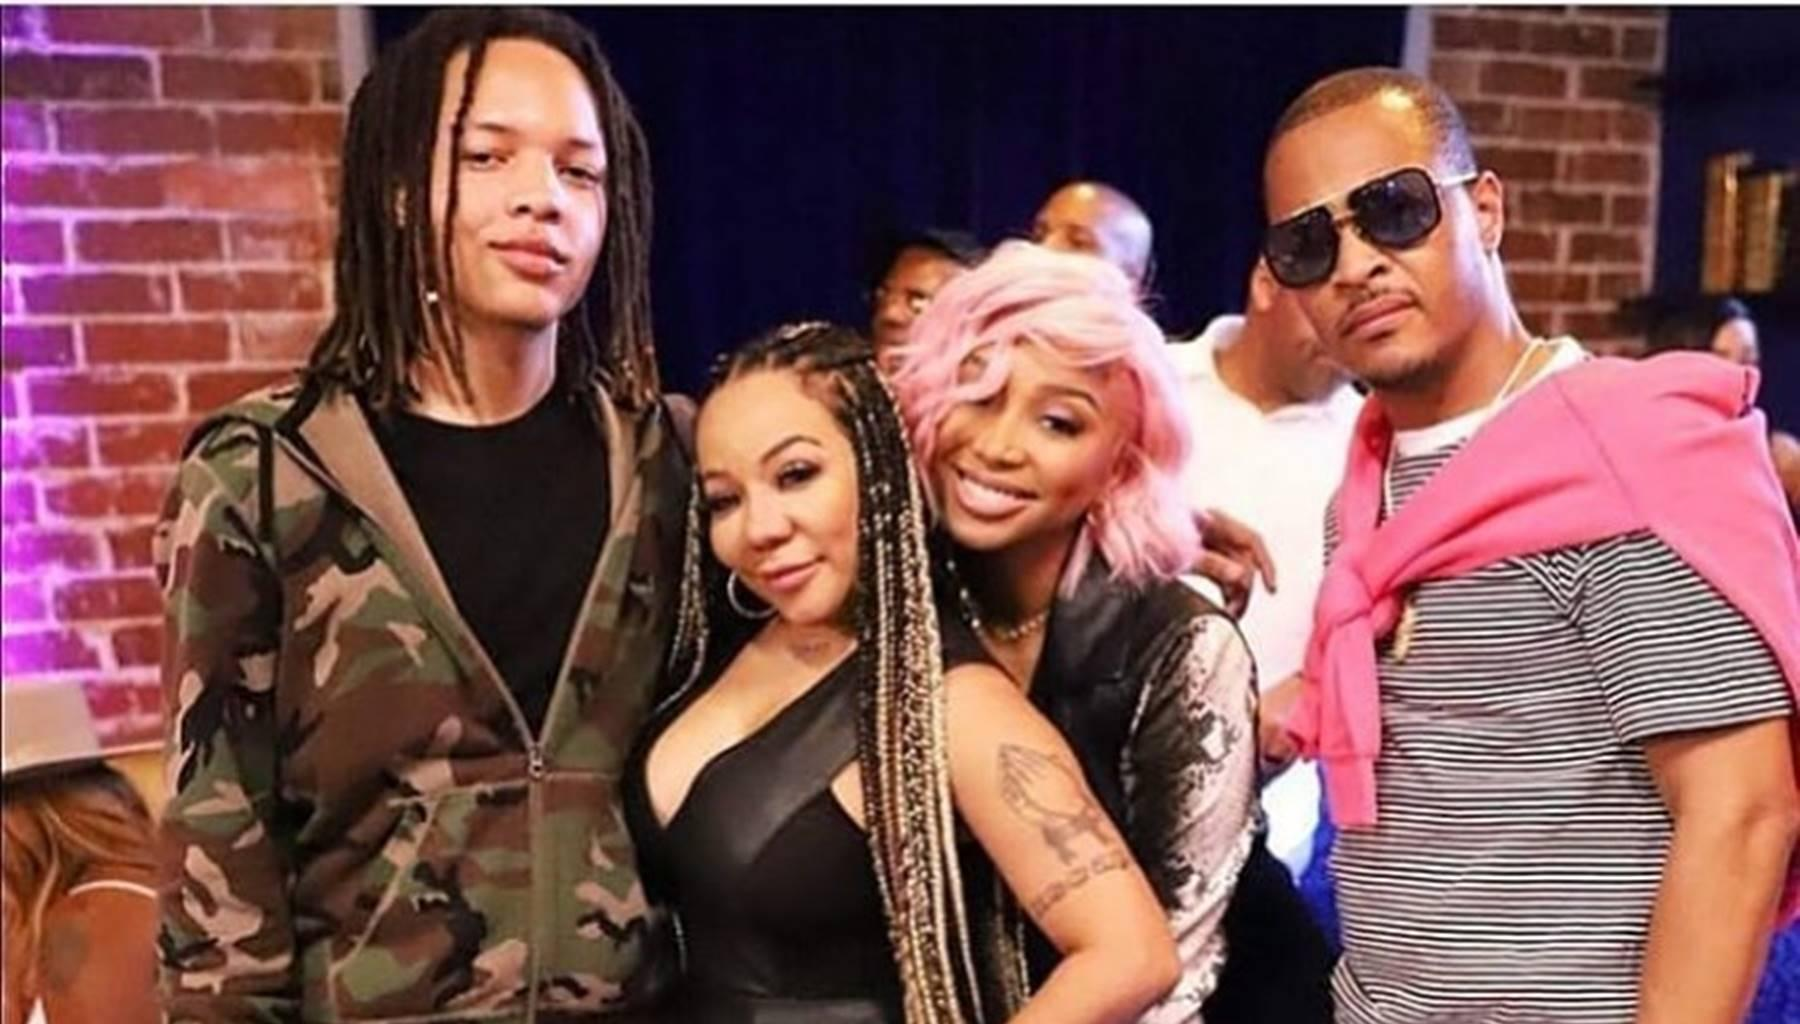 Tiny Harris Amazes Fans With Photos Where She Looks Like Daughter Zonnique Pullins -- Xscape And T.I.'s Fans See Her Twin Sister